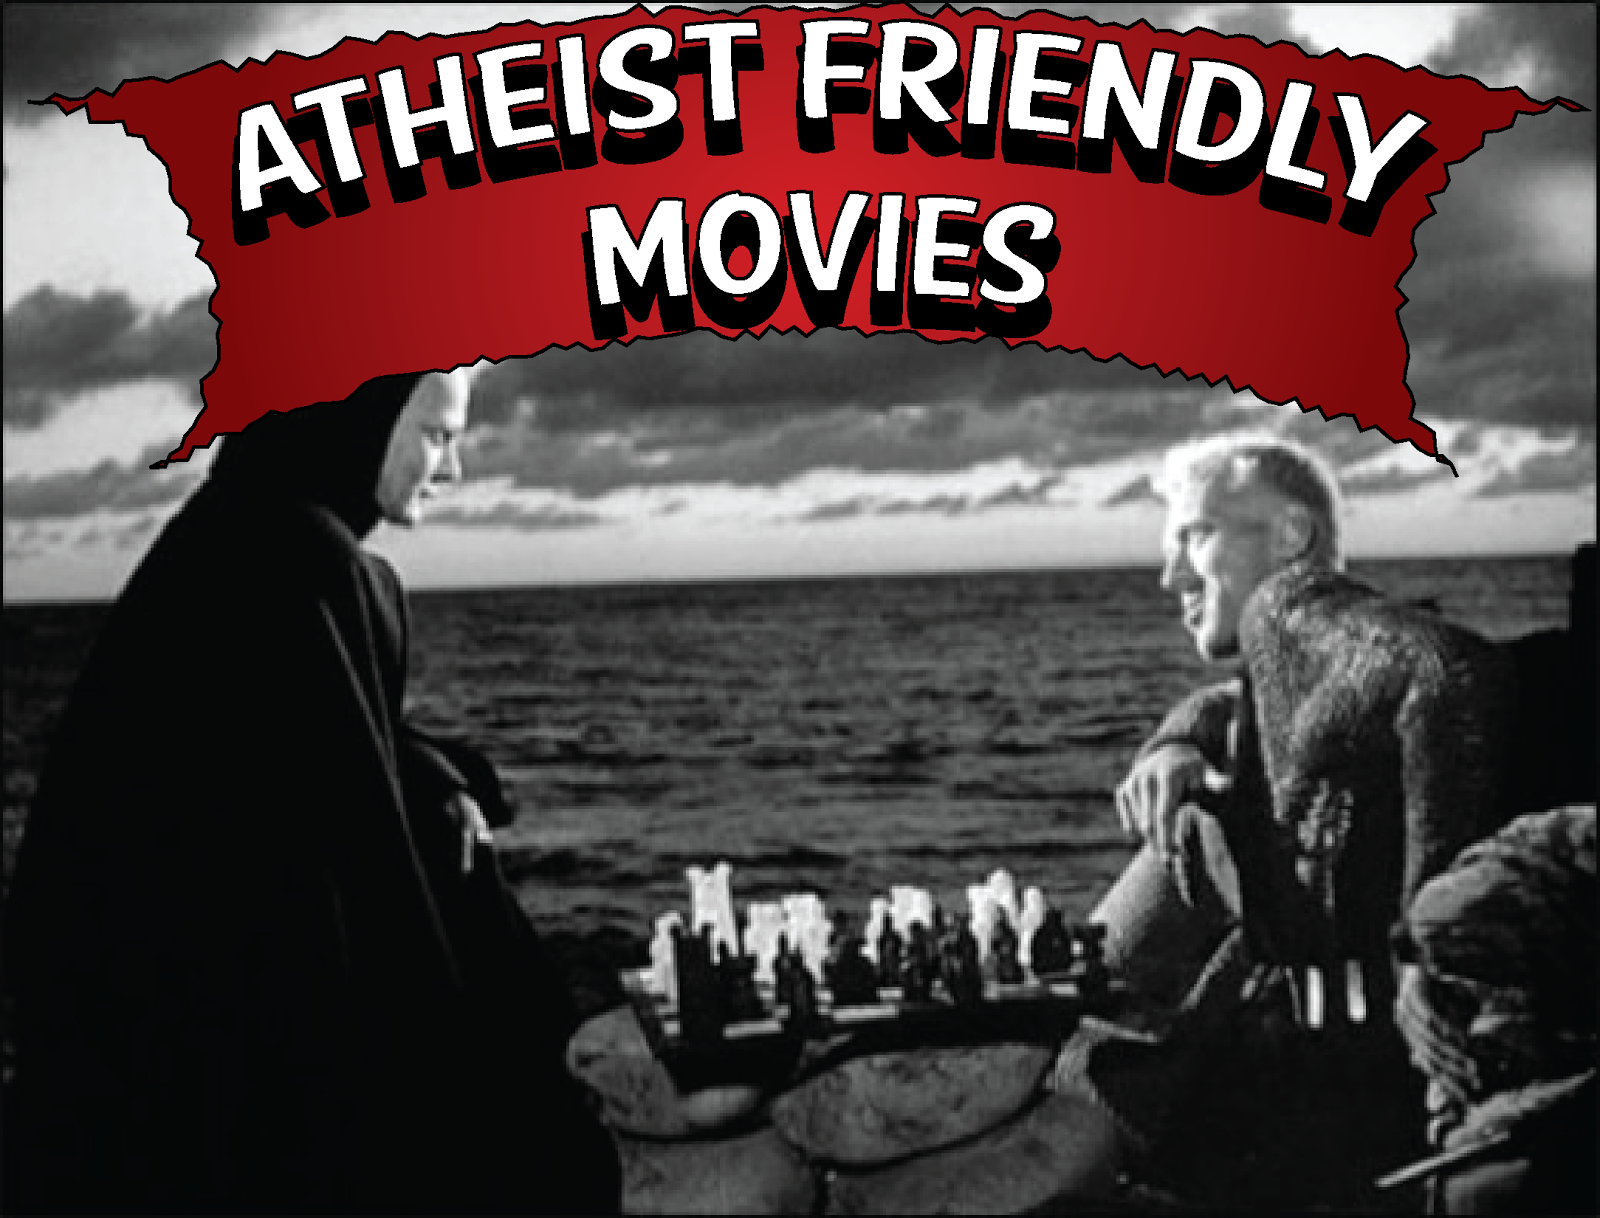 The atheist friendly movies list